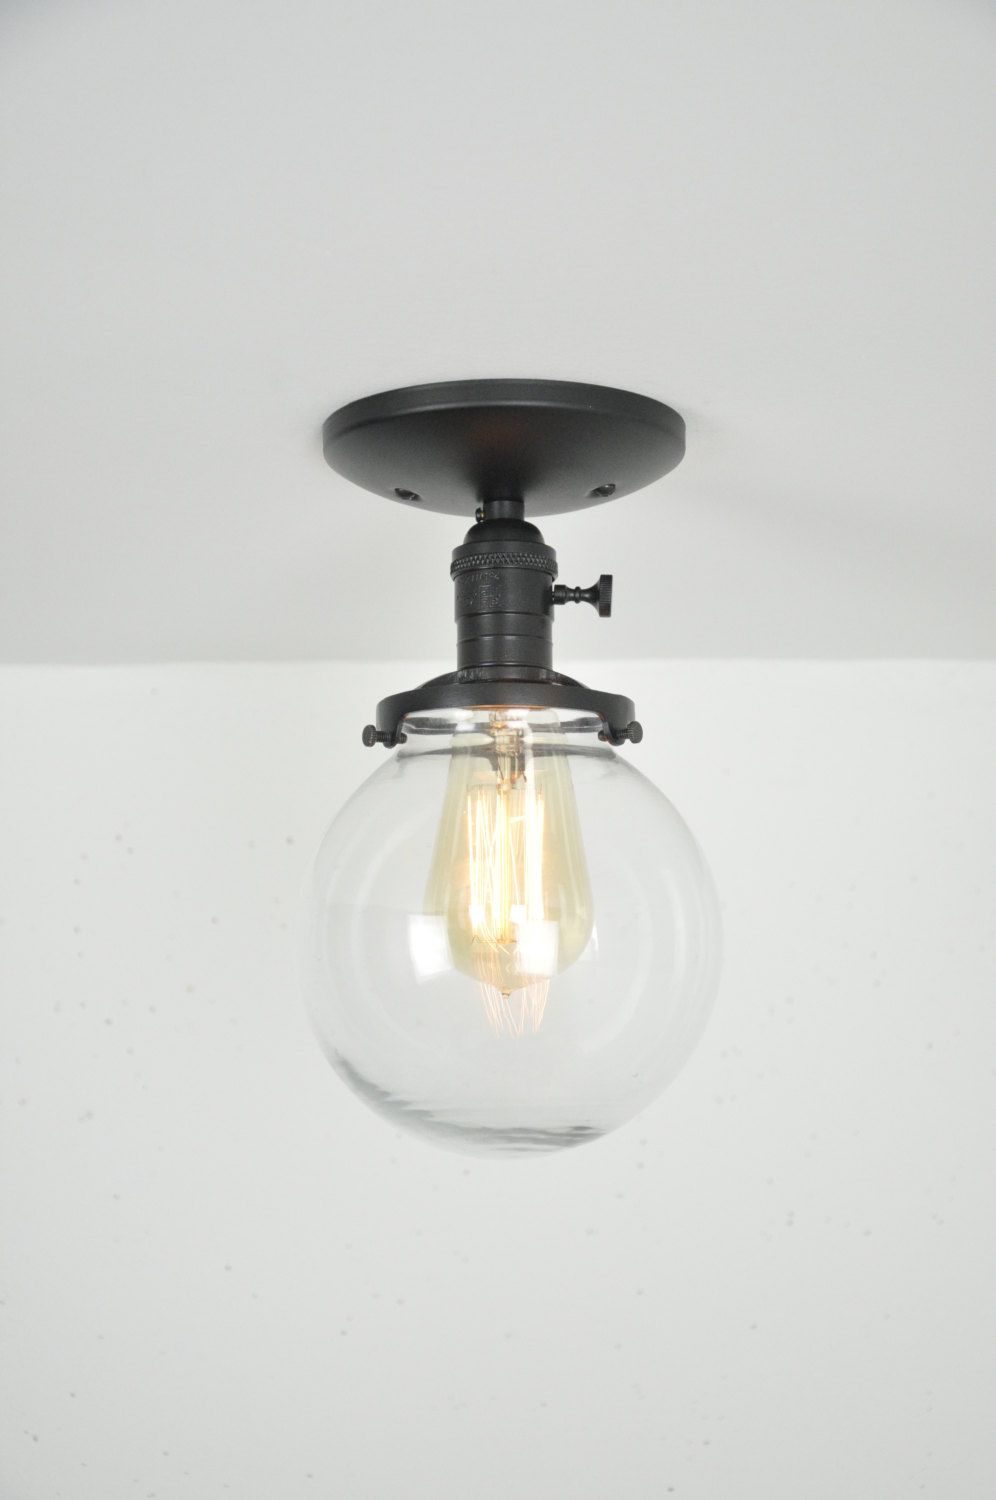 6 Flat Black Gl Globe Pendant Light Fixture Also Available With Larger Globes High Quality Materials This Makes A Beautiful Ceiling Mounted